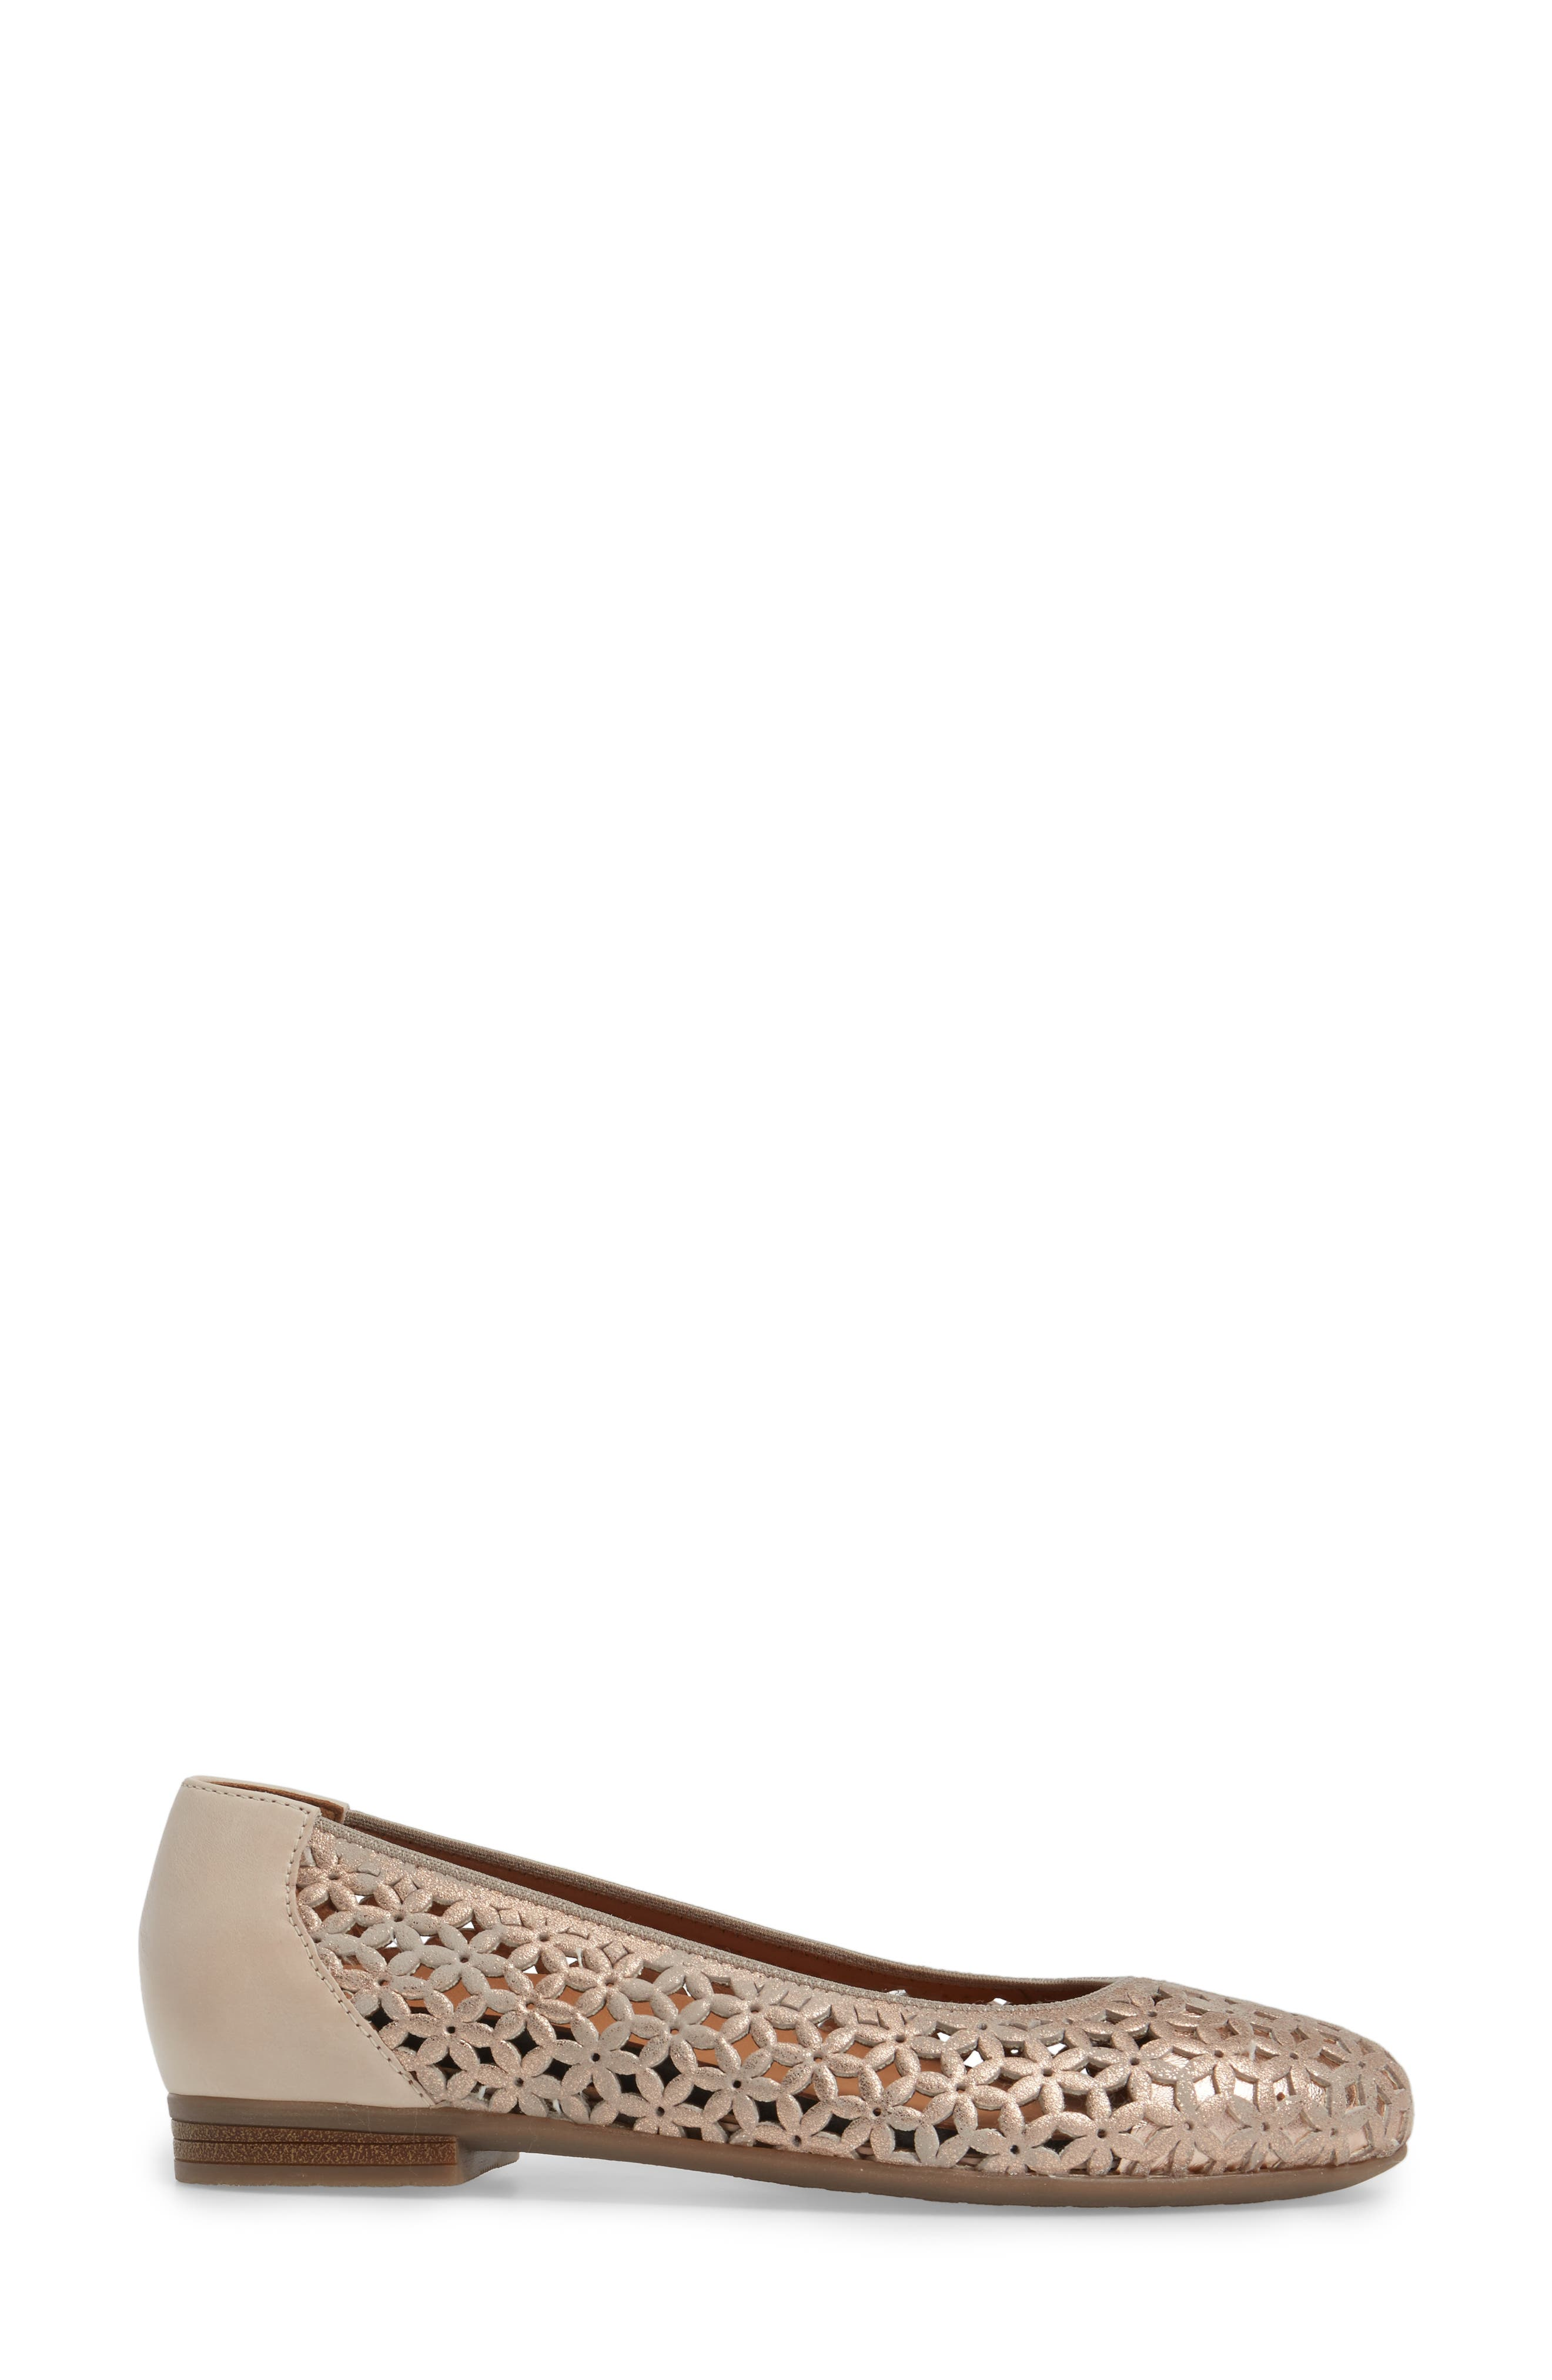 Stephanie Perforated Ballet Flat,                             Alternate thumbnail 6, color,